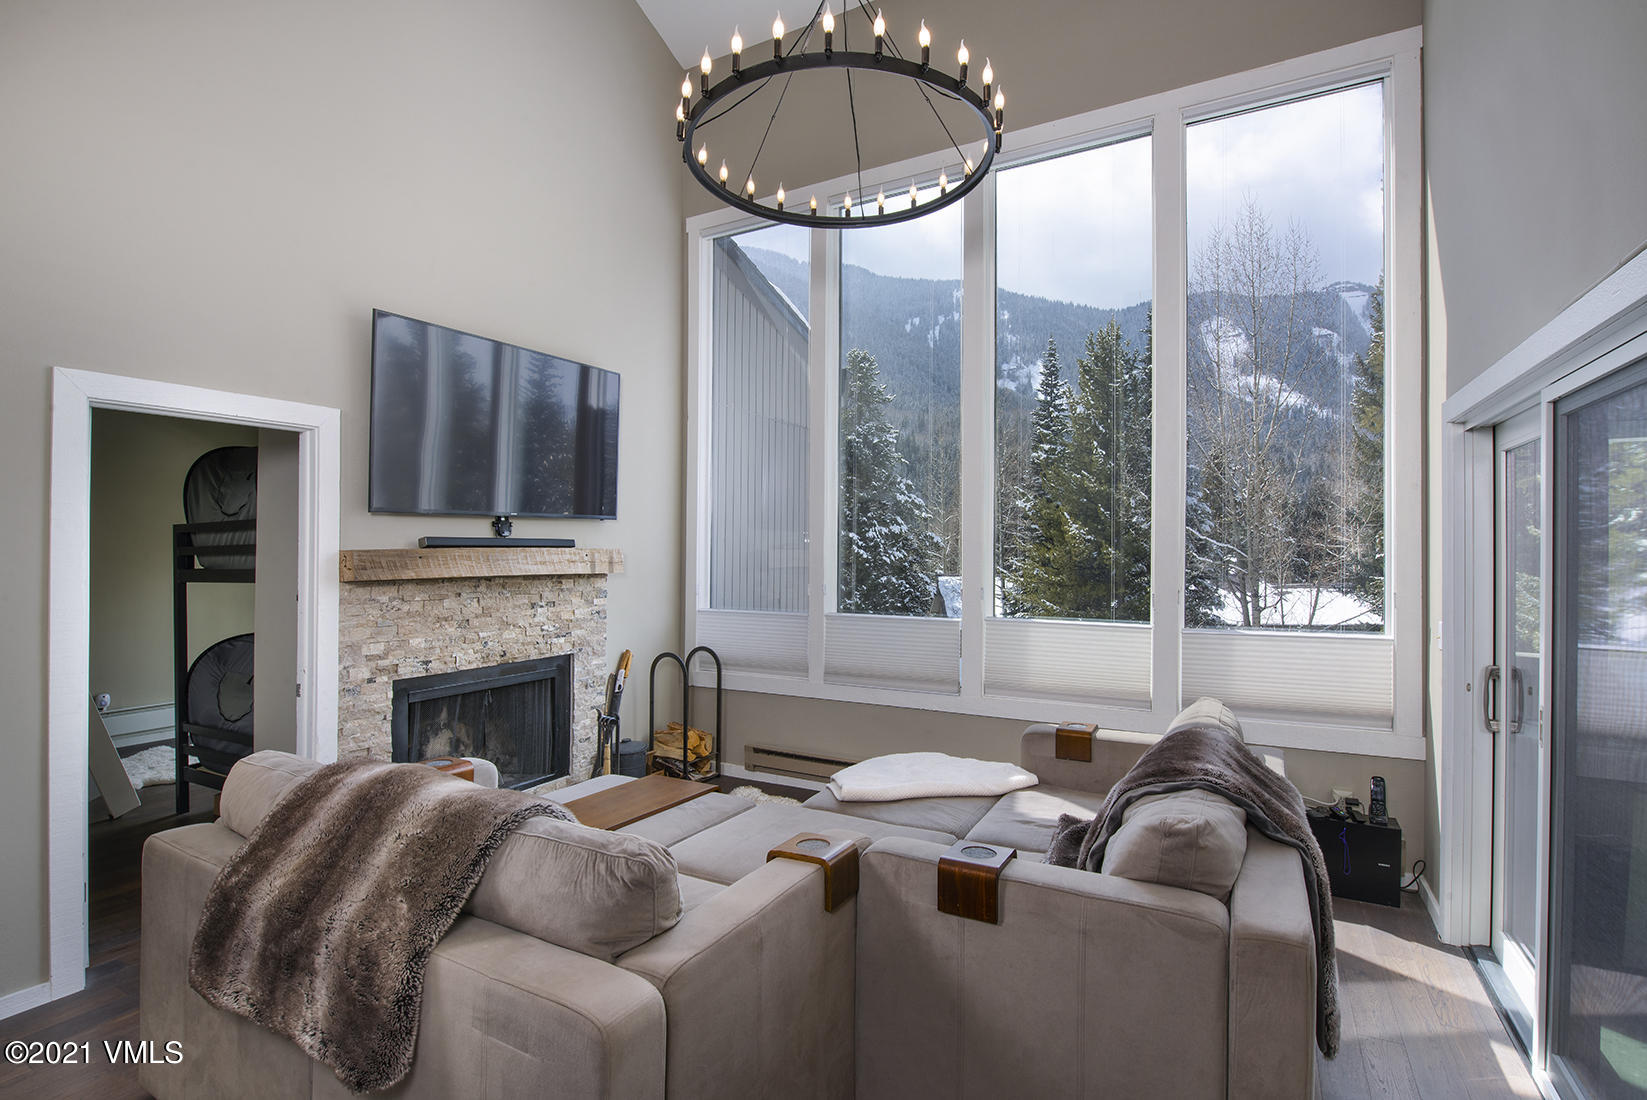 Completely remodeled, top floor, corner 2-bedroom, 2-bath plus loft residence with spectacular views of the creek and East Vail Chutes.  This condominium is light and bright with vaulted ceilings, beautiful furnishings and a wood burning fireplace.  Loft area serves as a cozy second living space with TV and couches.  Some upgrades include new sliding doors and windows, new wood flooring and carpet, all new kitchen, lighting, drywall on ceiling for energy efficiency, new paint and more.